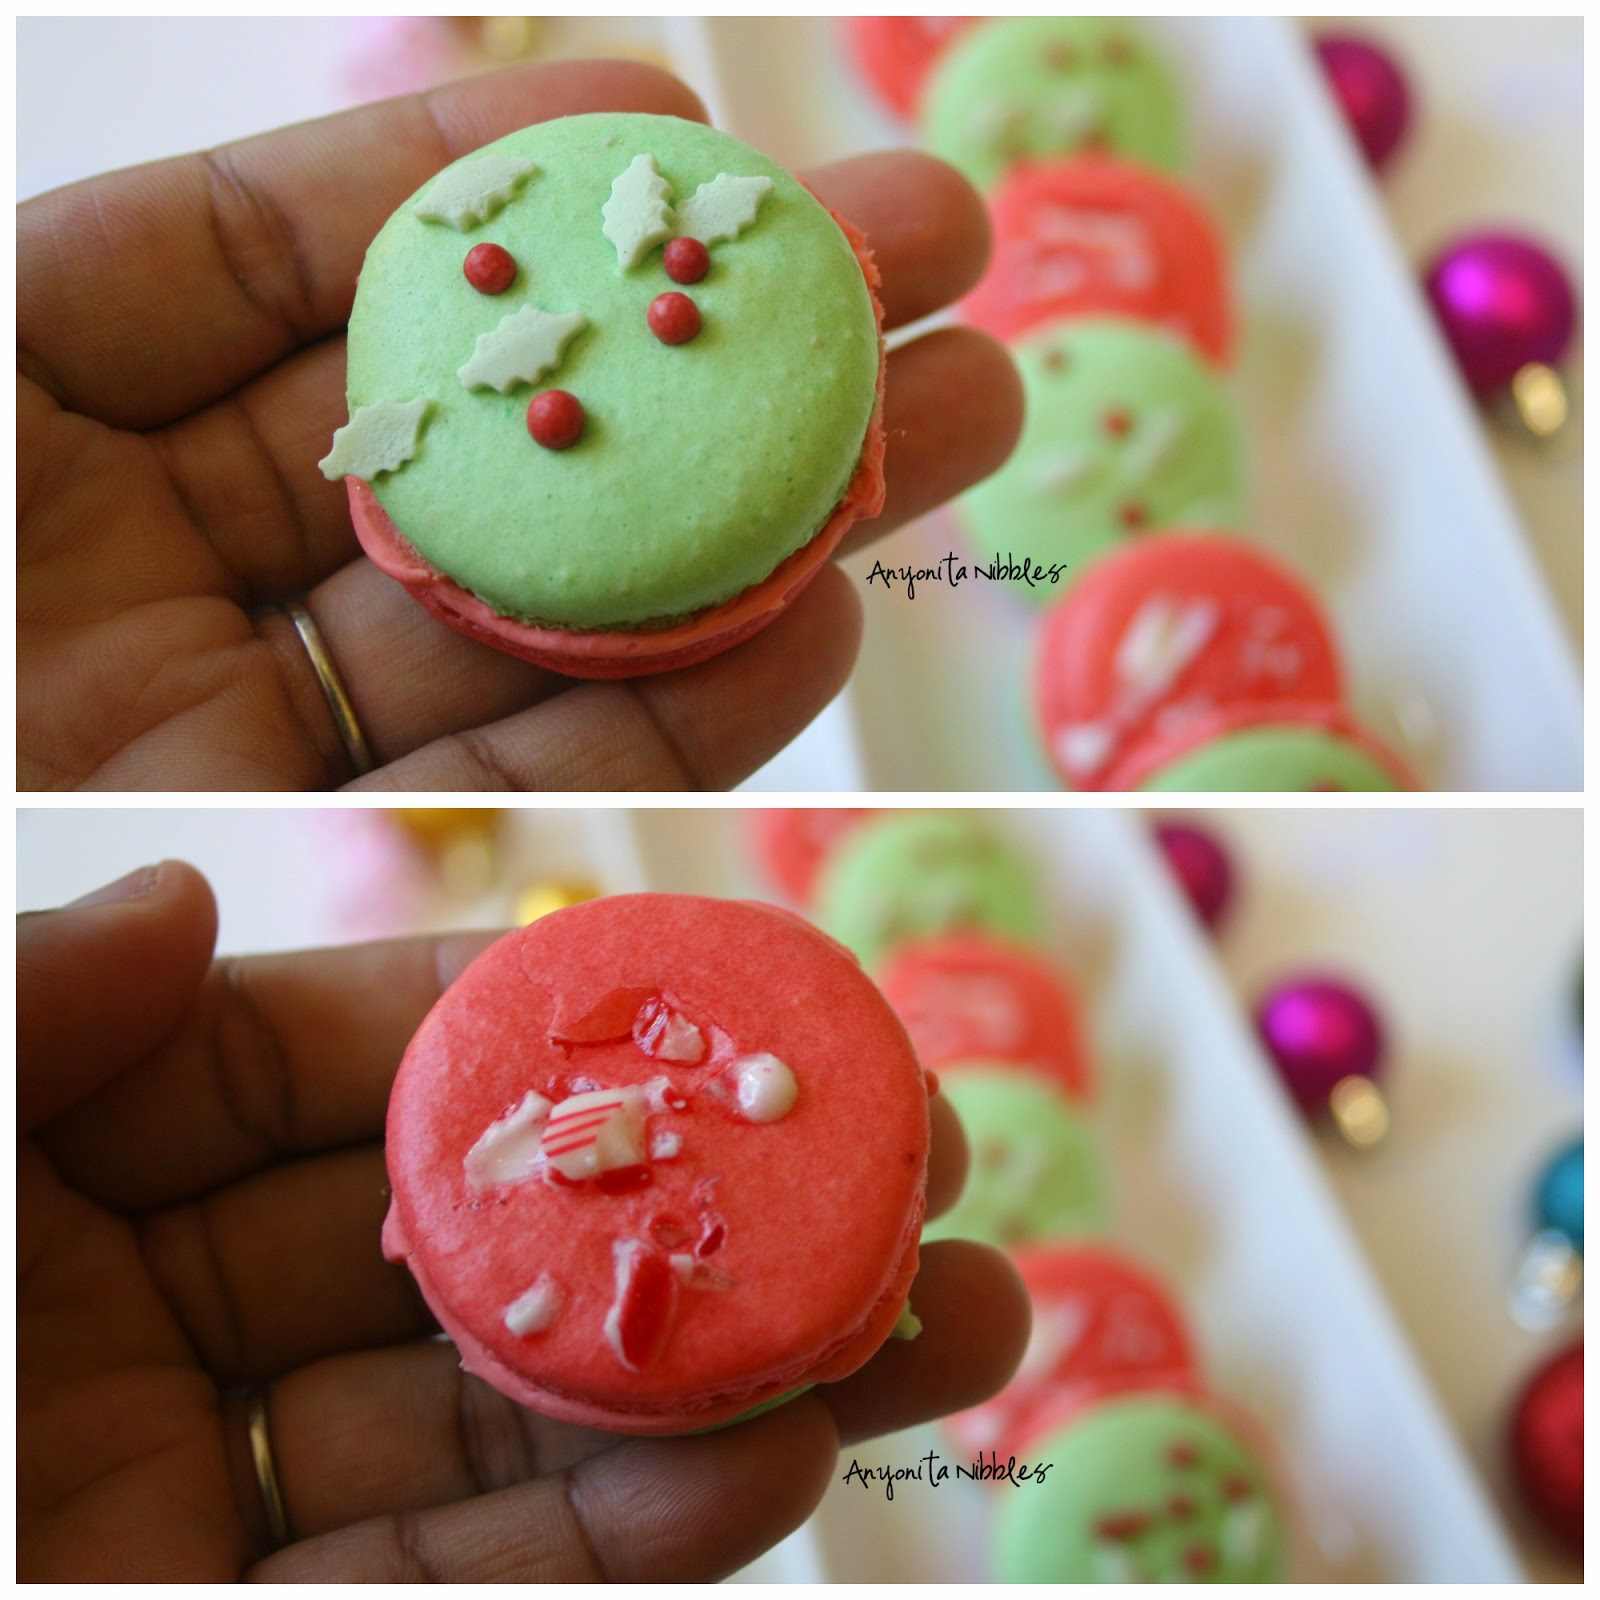 Front and back to a Gluten Free Double Peppermint French Macaron from Anyonita-nibbles.co.uk